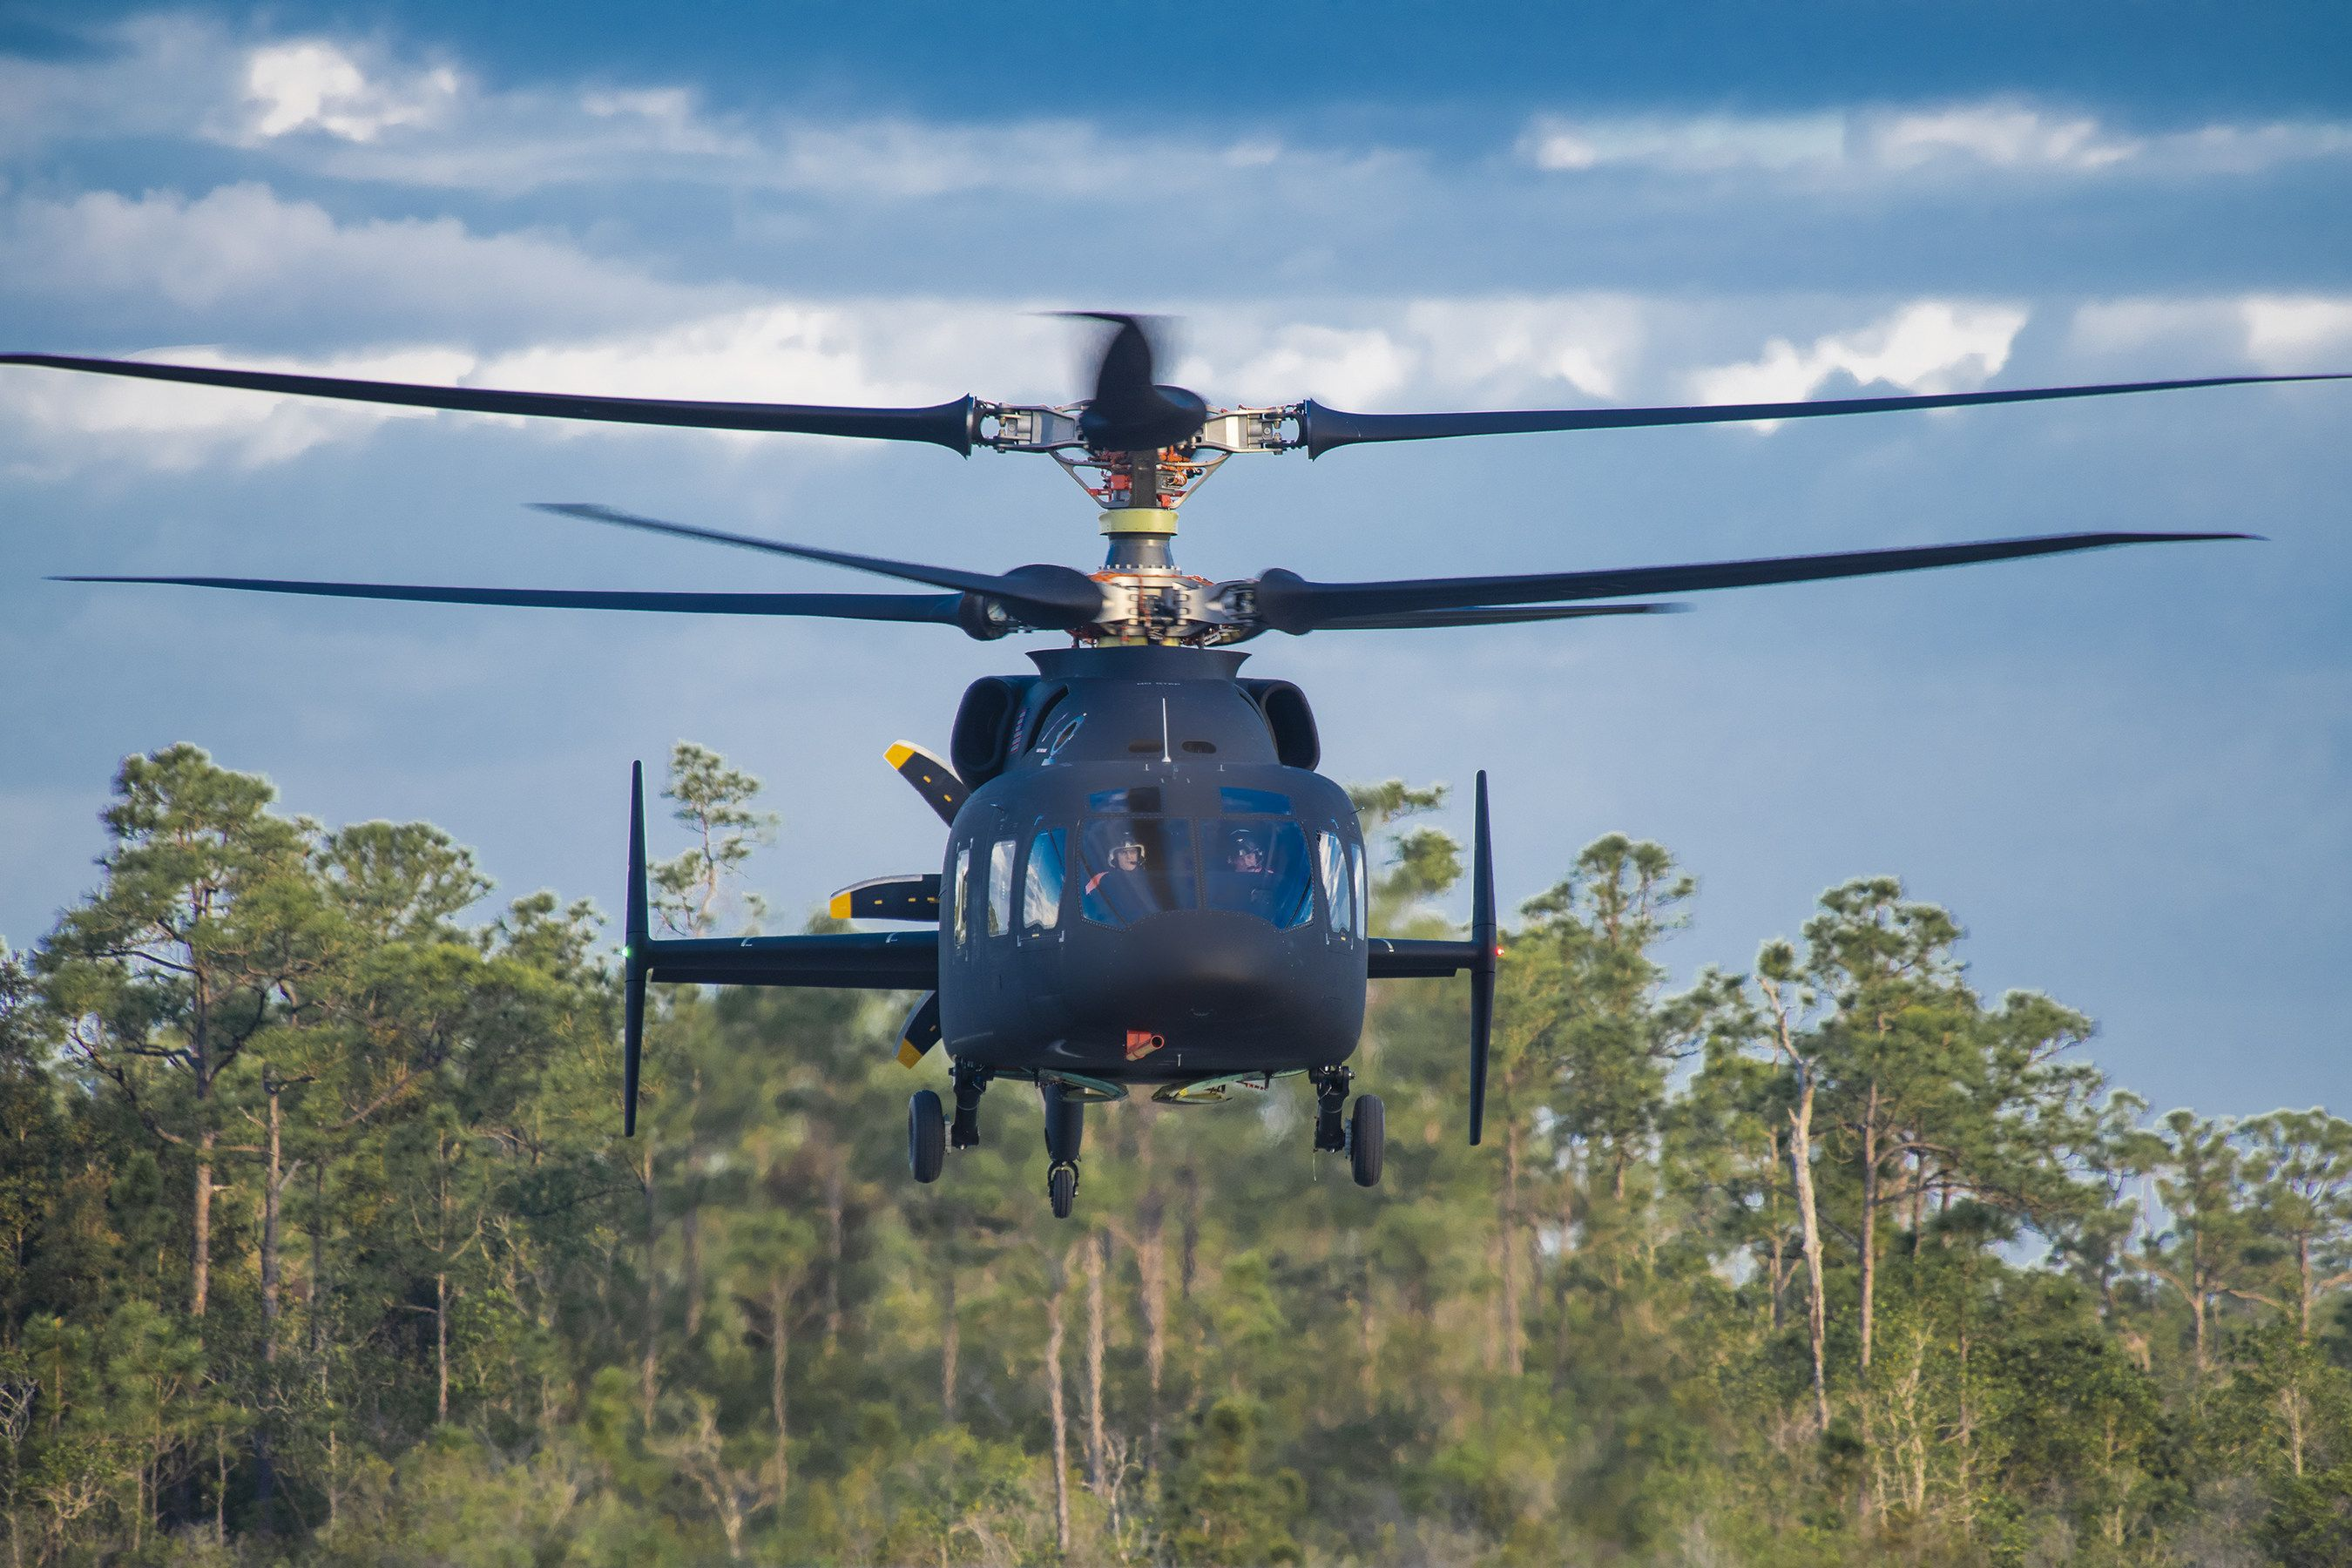 First Flight of the SB-1 Defiant, a Potential Blackhawk Helicopter Replacement